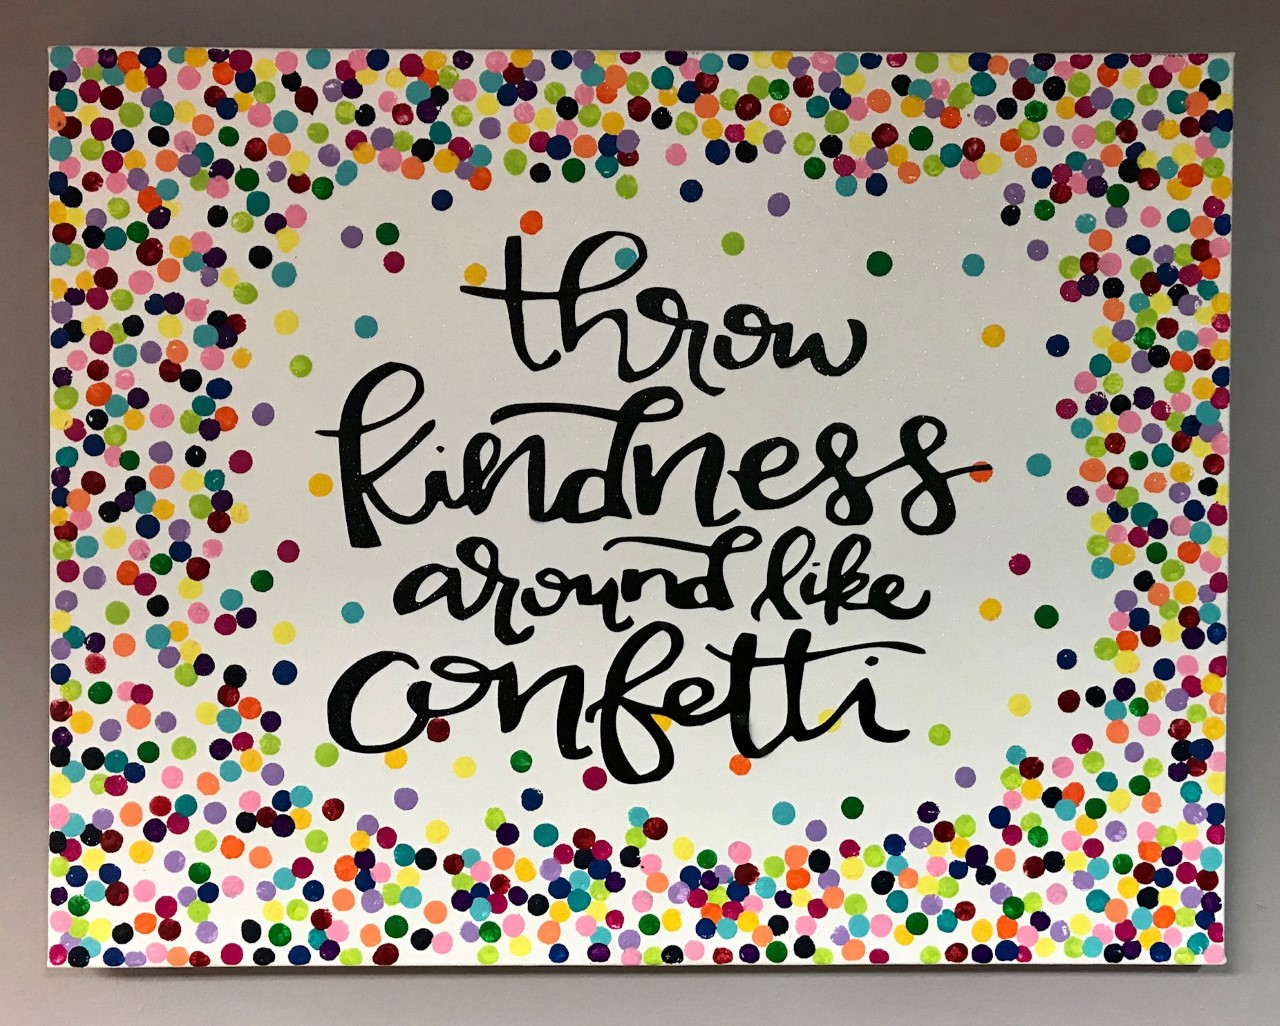 Kindness Canvas